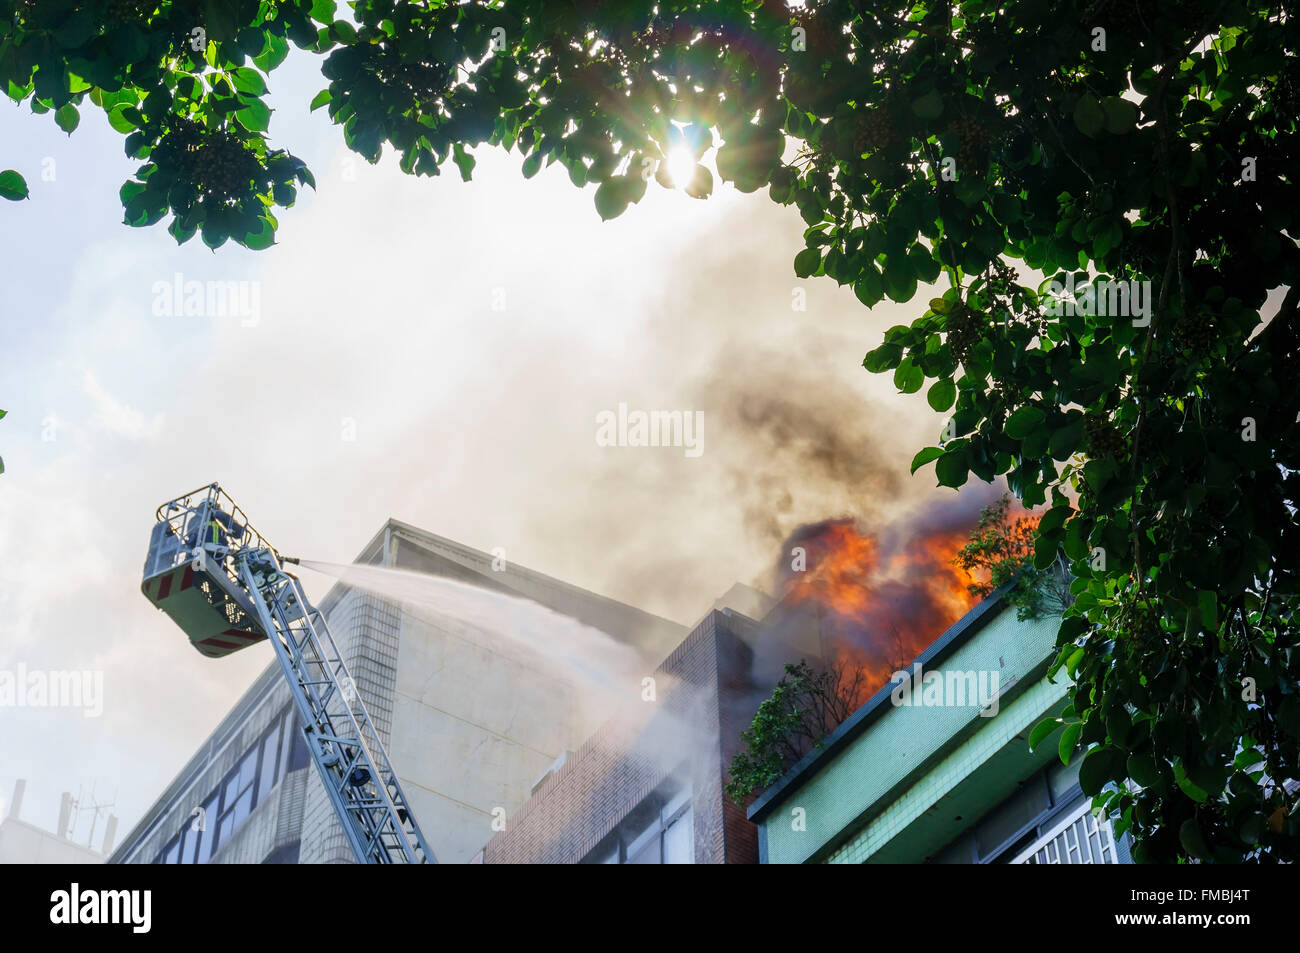 Fire fighter is fighting against the fire disaster at Taipei, Taiwan - Stock Image